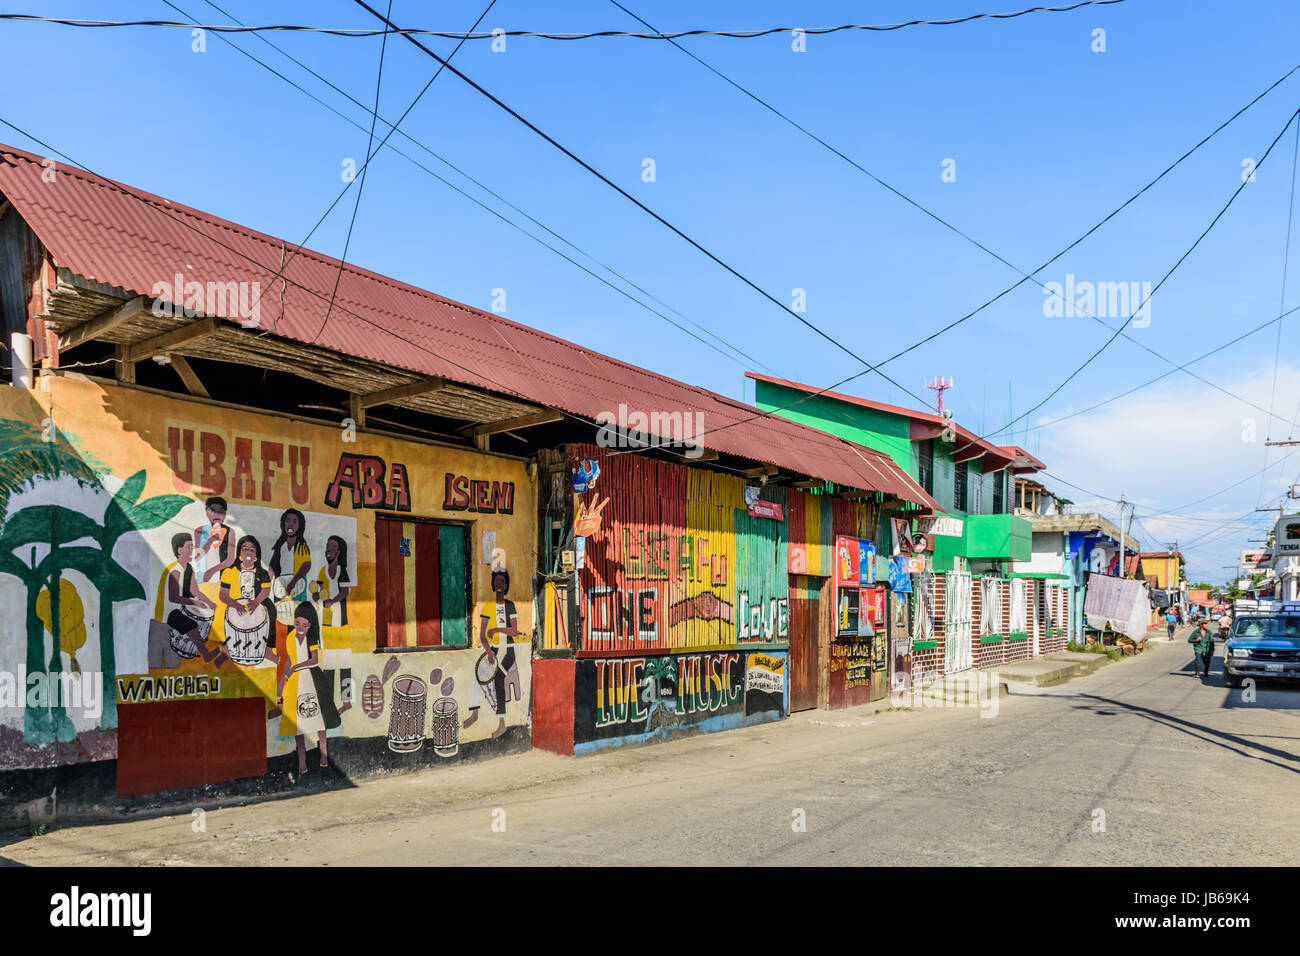 Livingston, Guatemala - August 31, 2016: Building walls painted with local Garifuna musicians in street in Caribbean - Stock Image